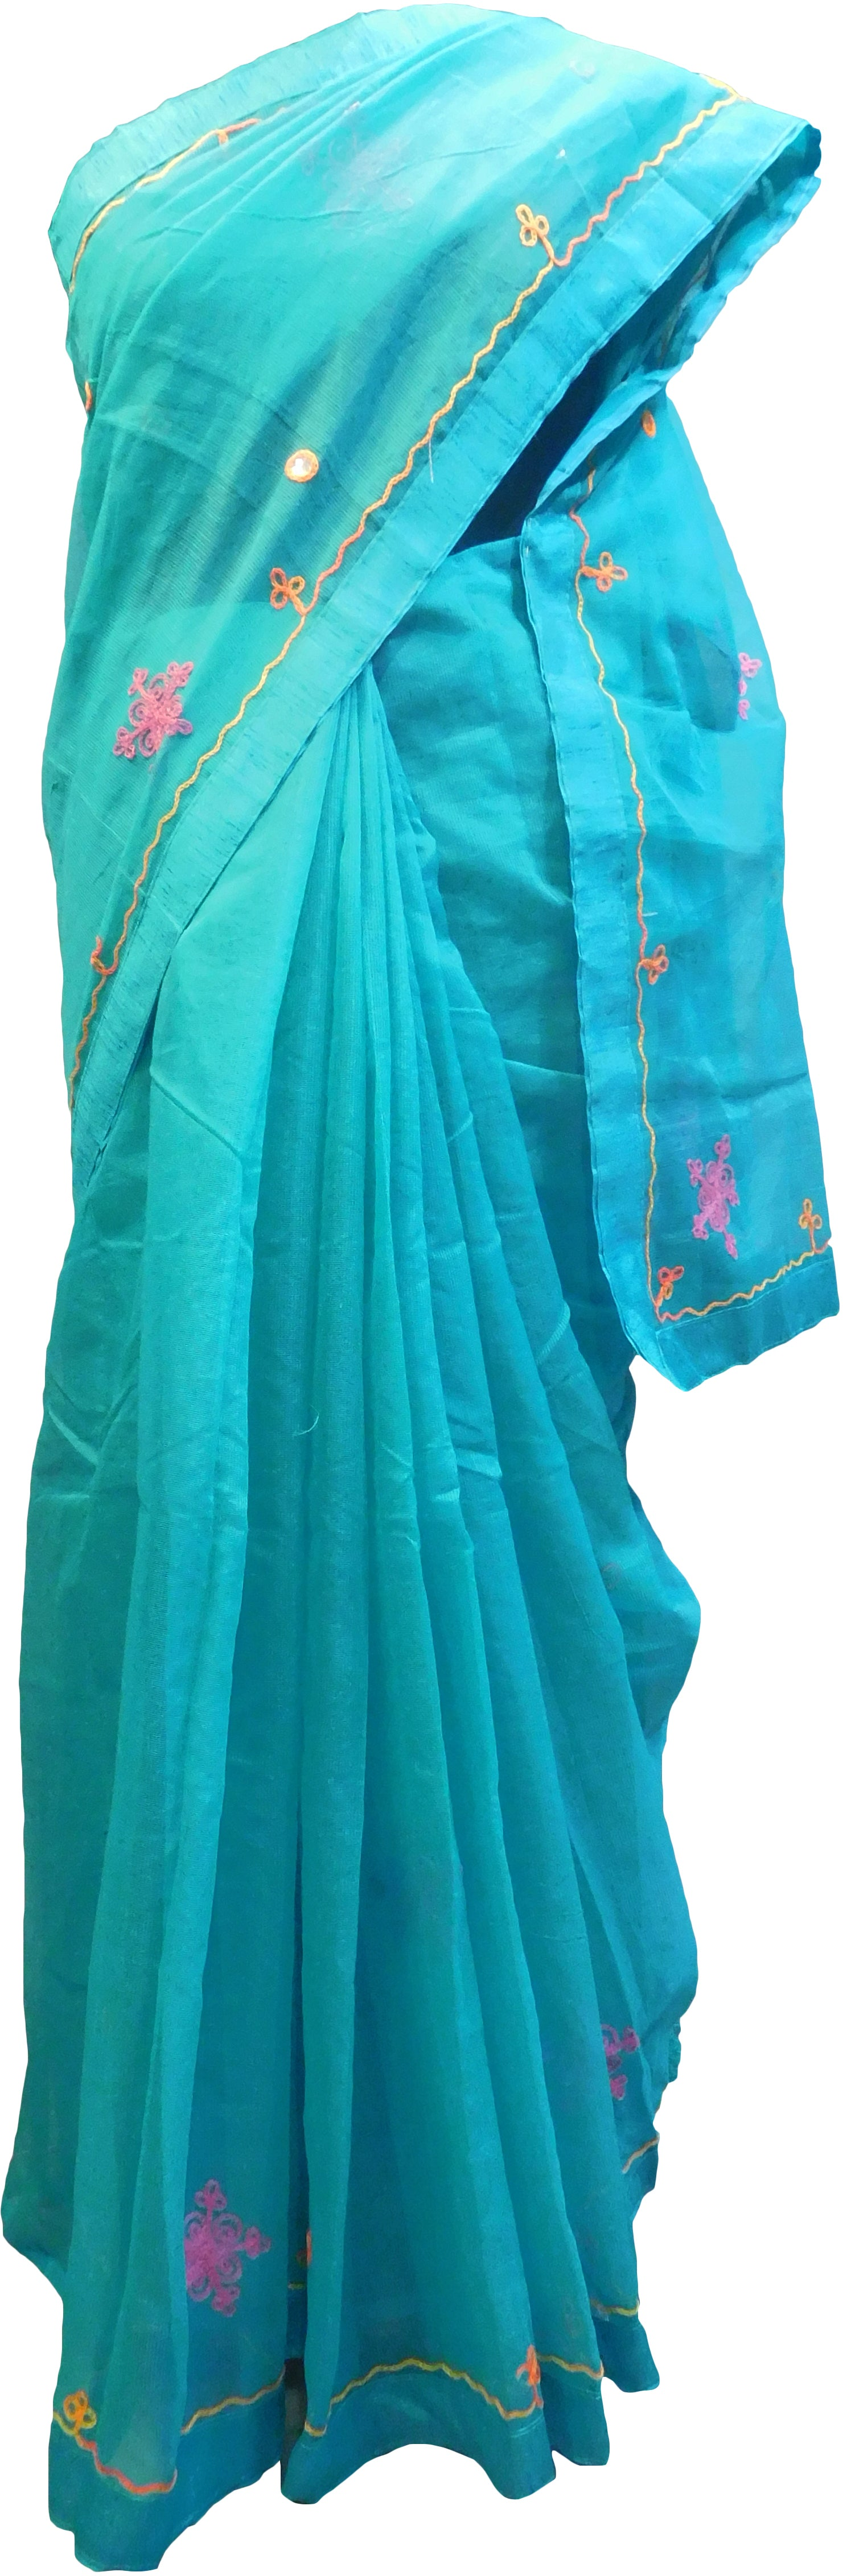 SMSAREE Turquoise Designer Wedding Partywear Supernet (Cotton) Thread Hand Embroidery Work Bridal Saree Sari With Blouse Piece F017